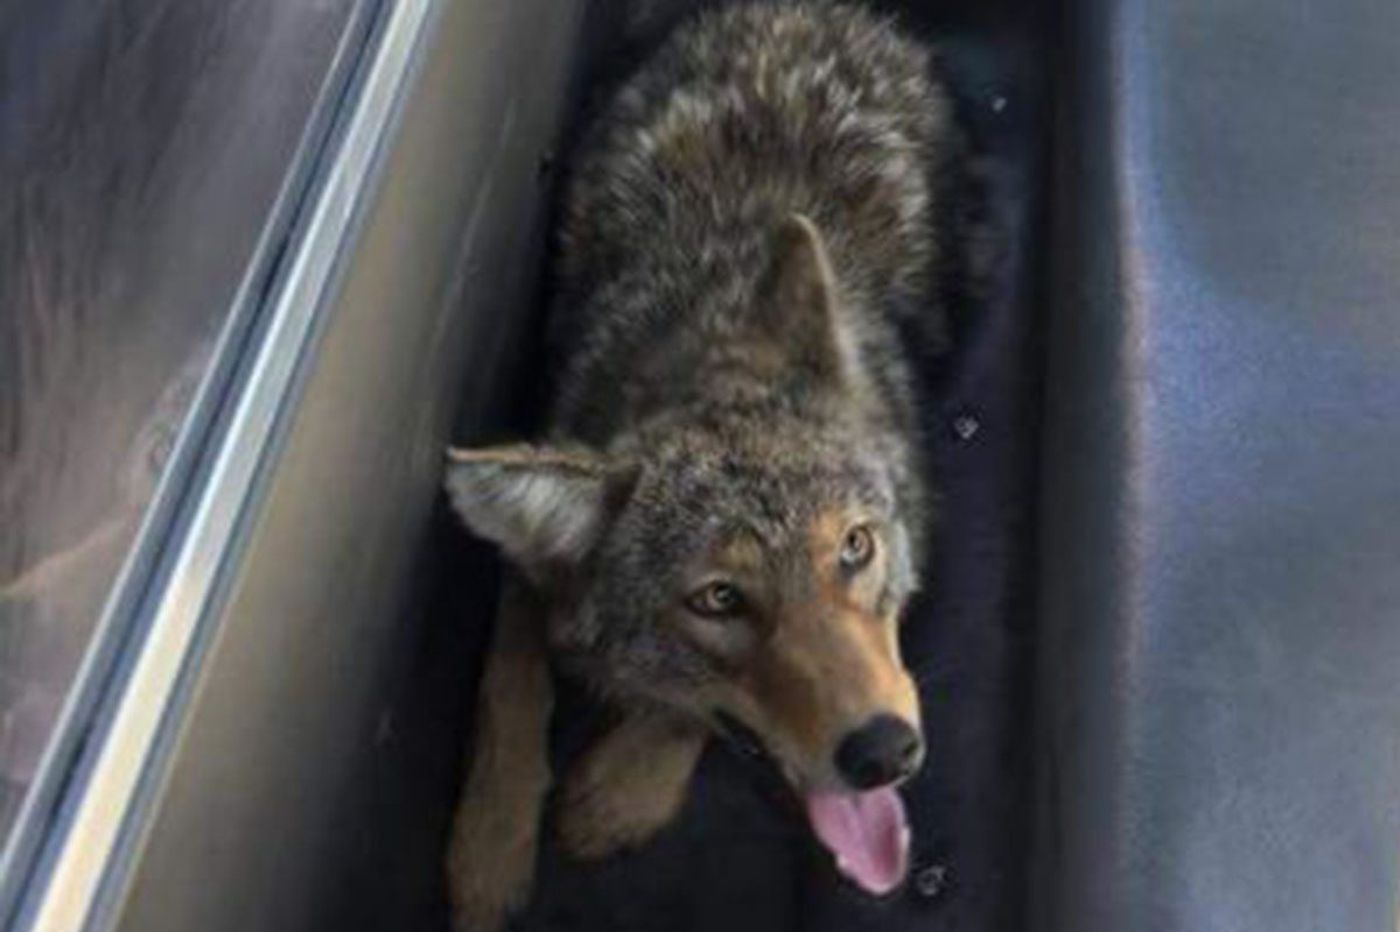 Mayfair coyote cornered by Philadelphia police and released in Pennypack Park